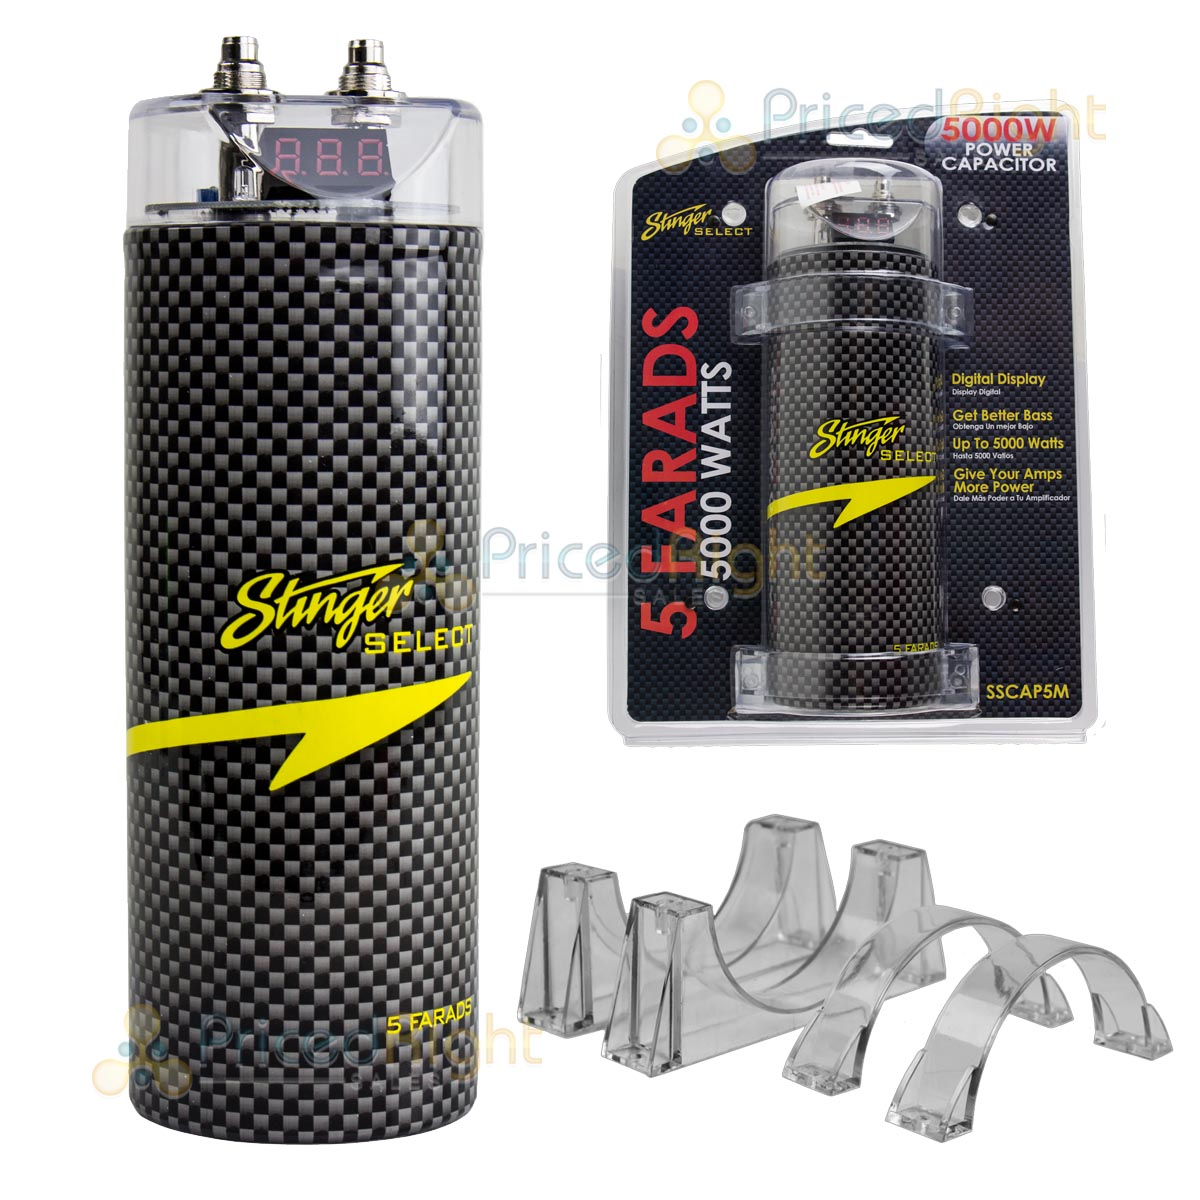 Details about 5 Farad Capacitor Stinger Select SSCAP5M 5000 Watts Power 12V  Car Digital Power